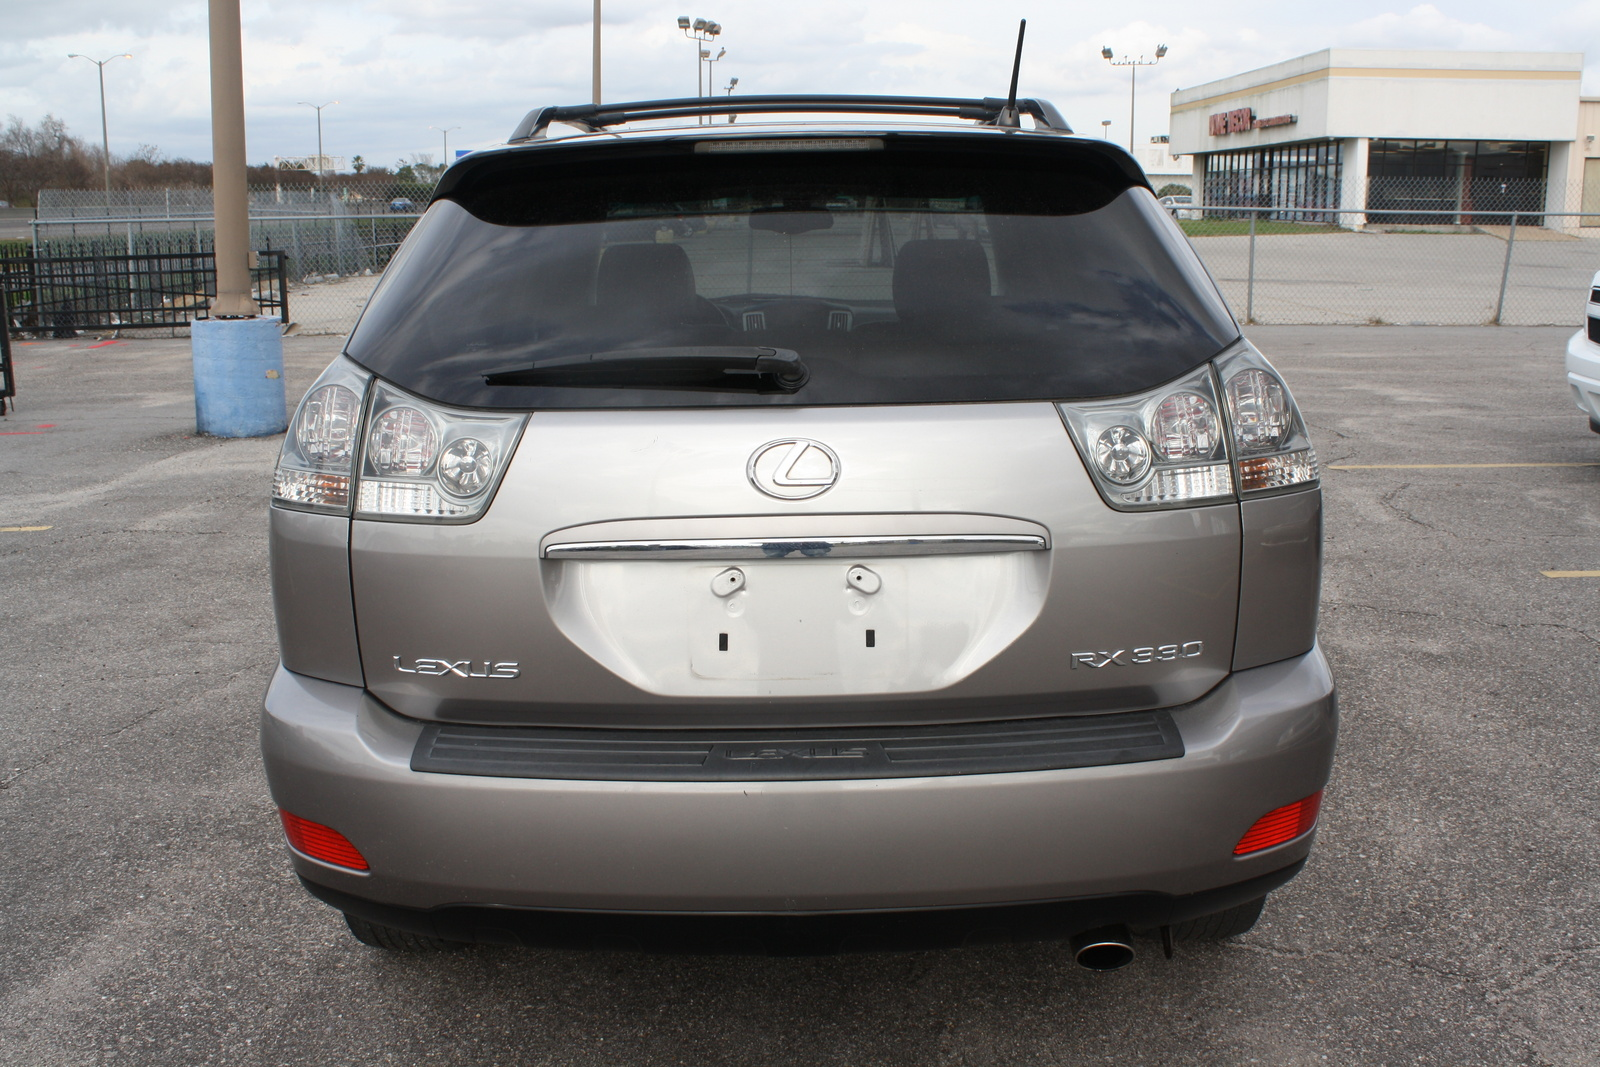 Lexus RX 330 2005 photo - 10